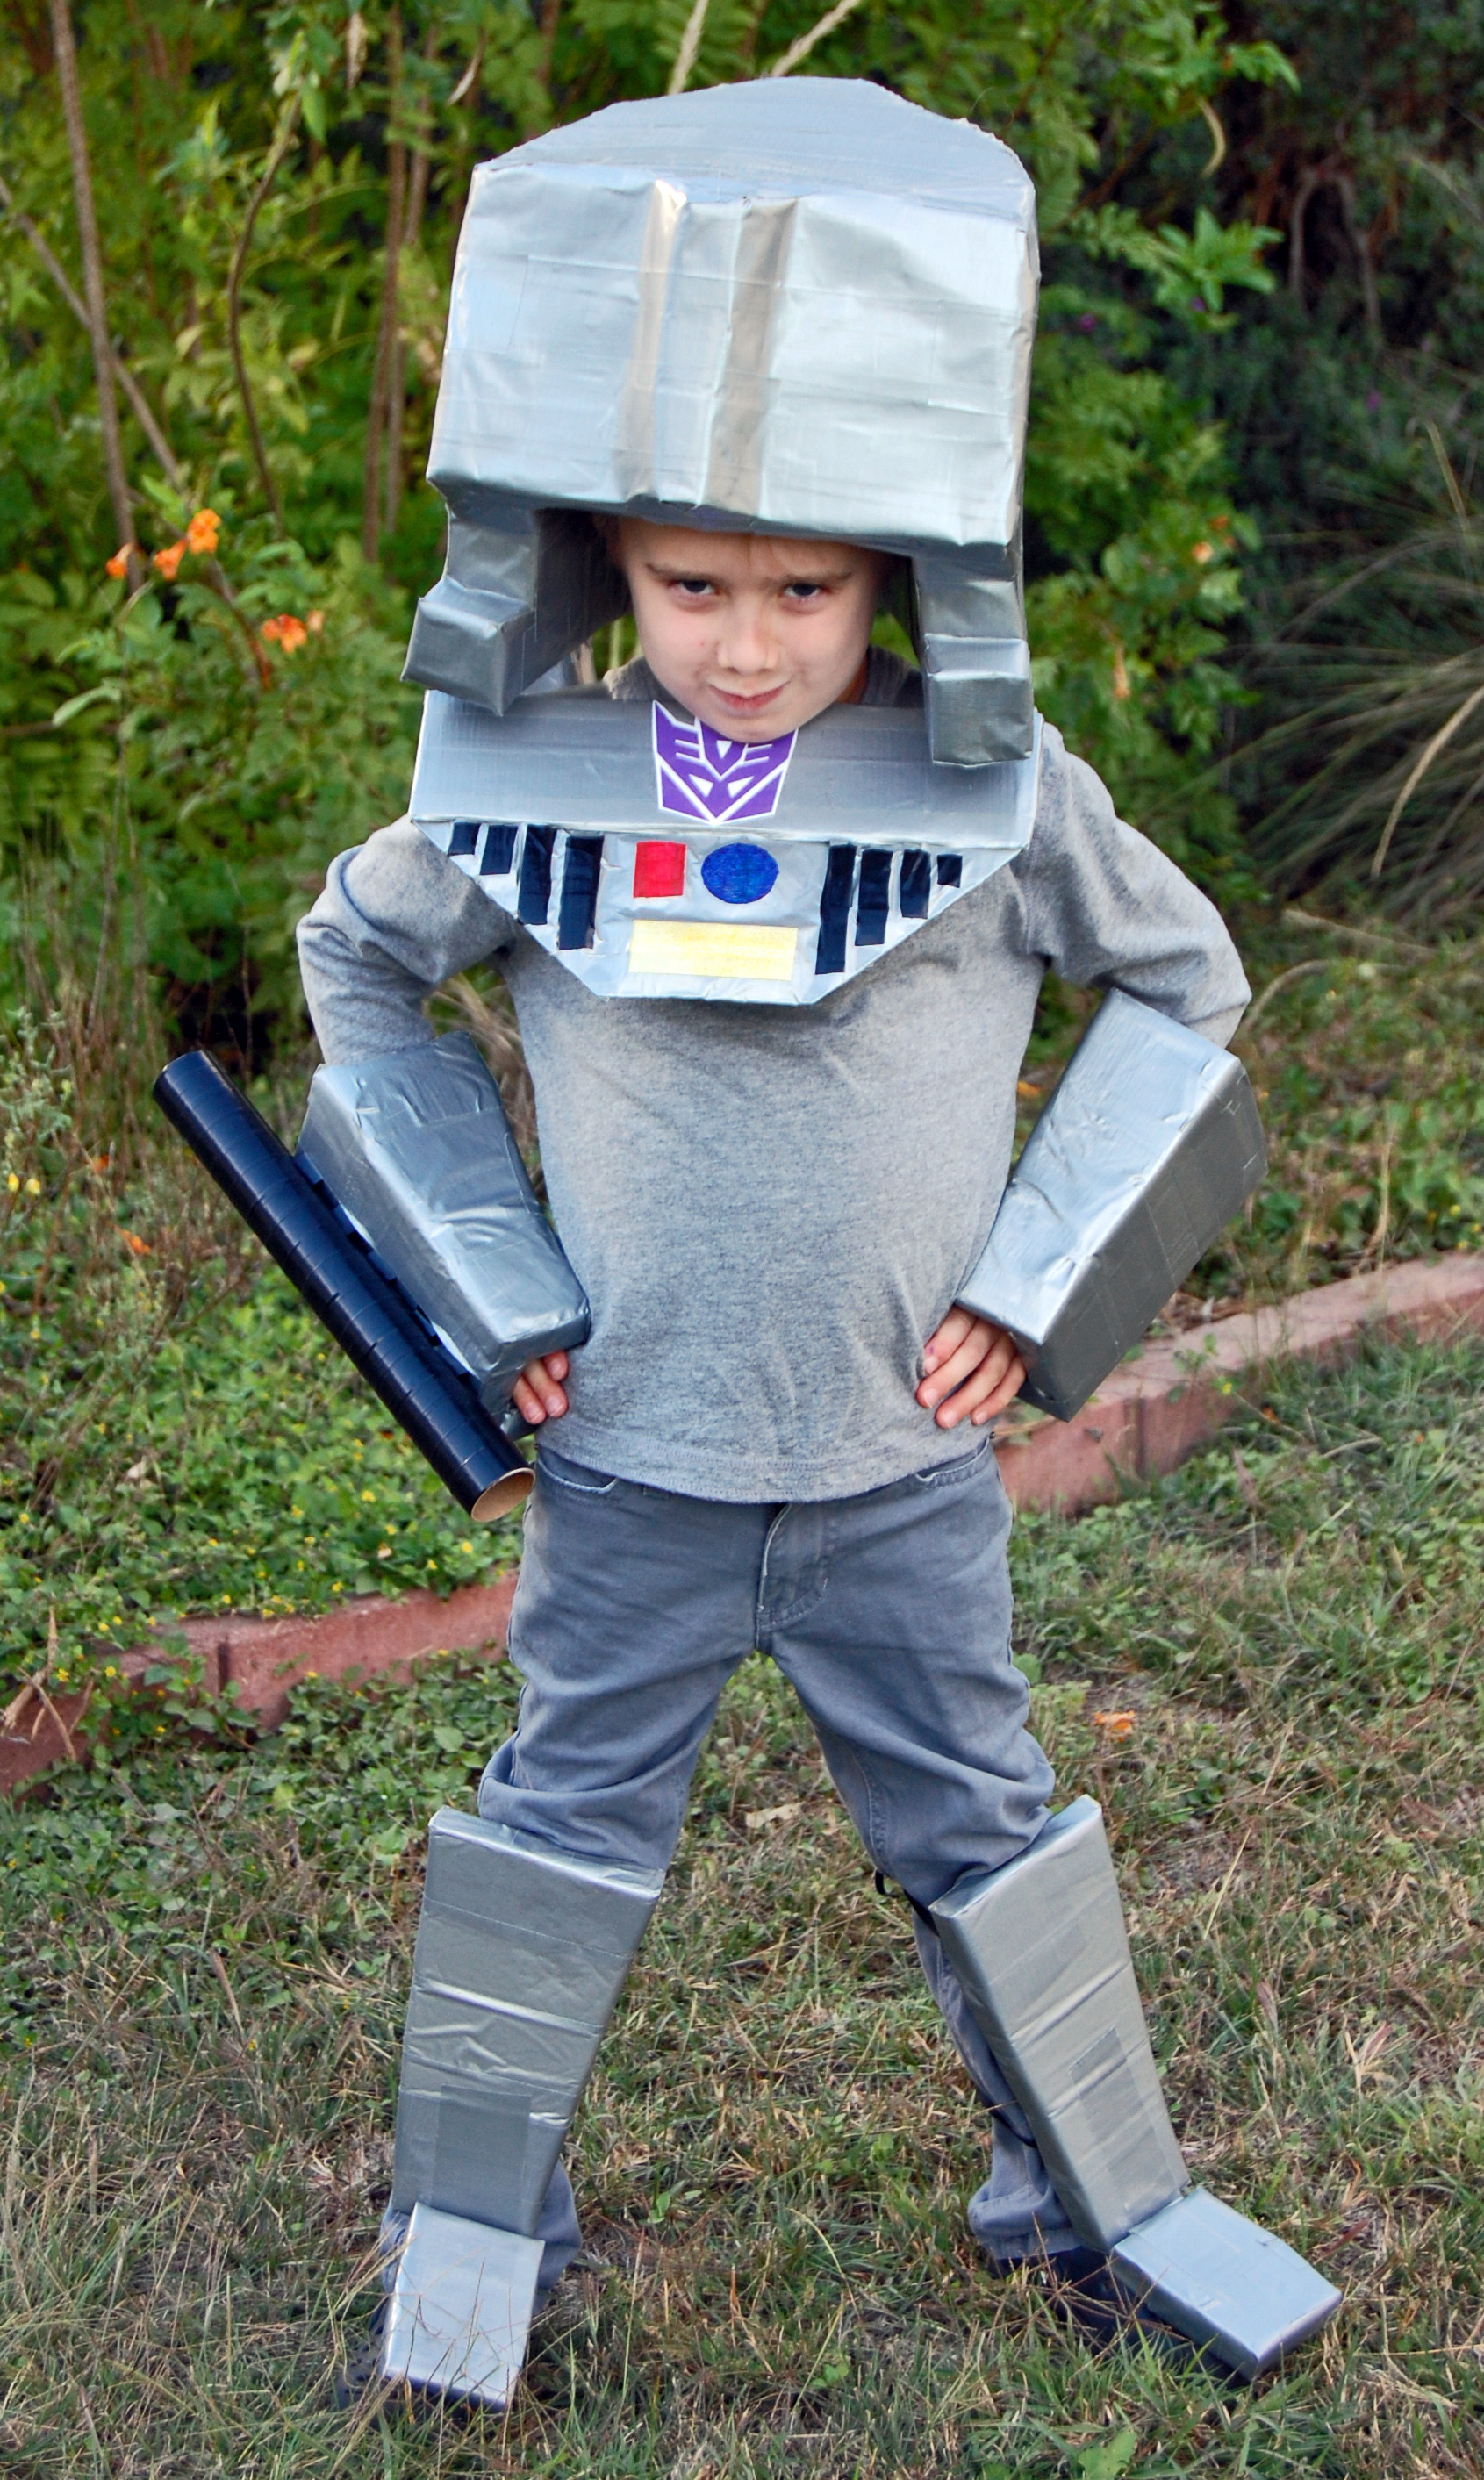 Best ideas about DIY Transformers Costumes . Save or Pin DIY Megatron Transformers Costume Now.